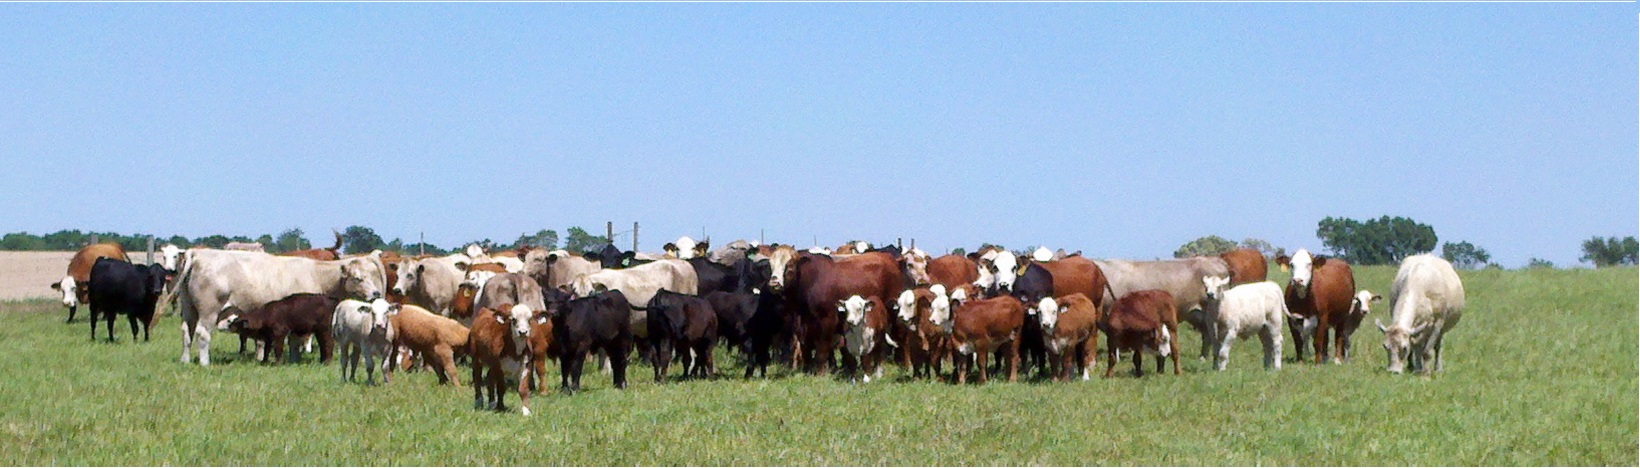 Beef Cattle at NFREC Marianna